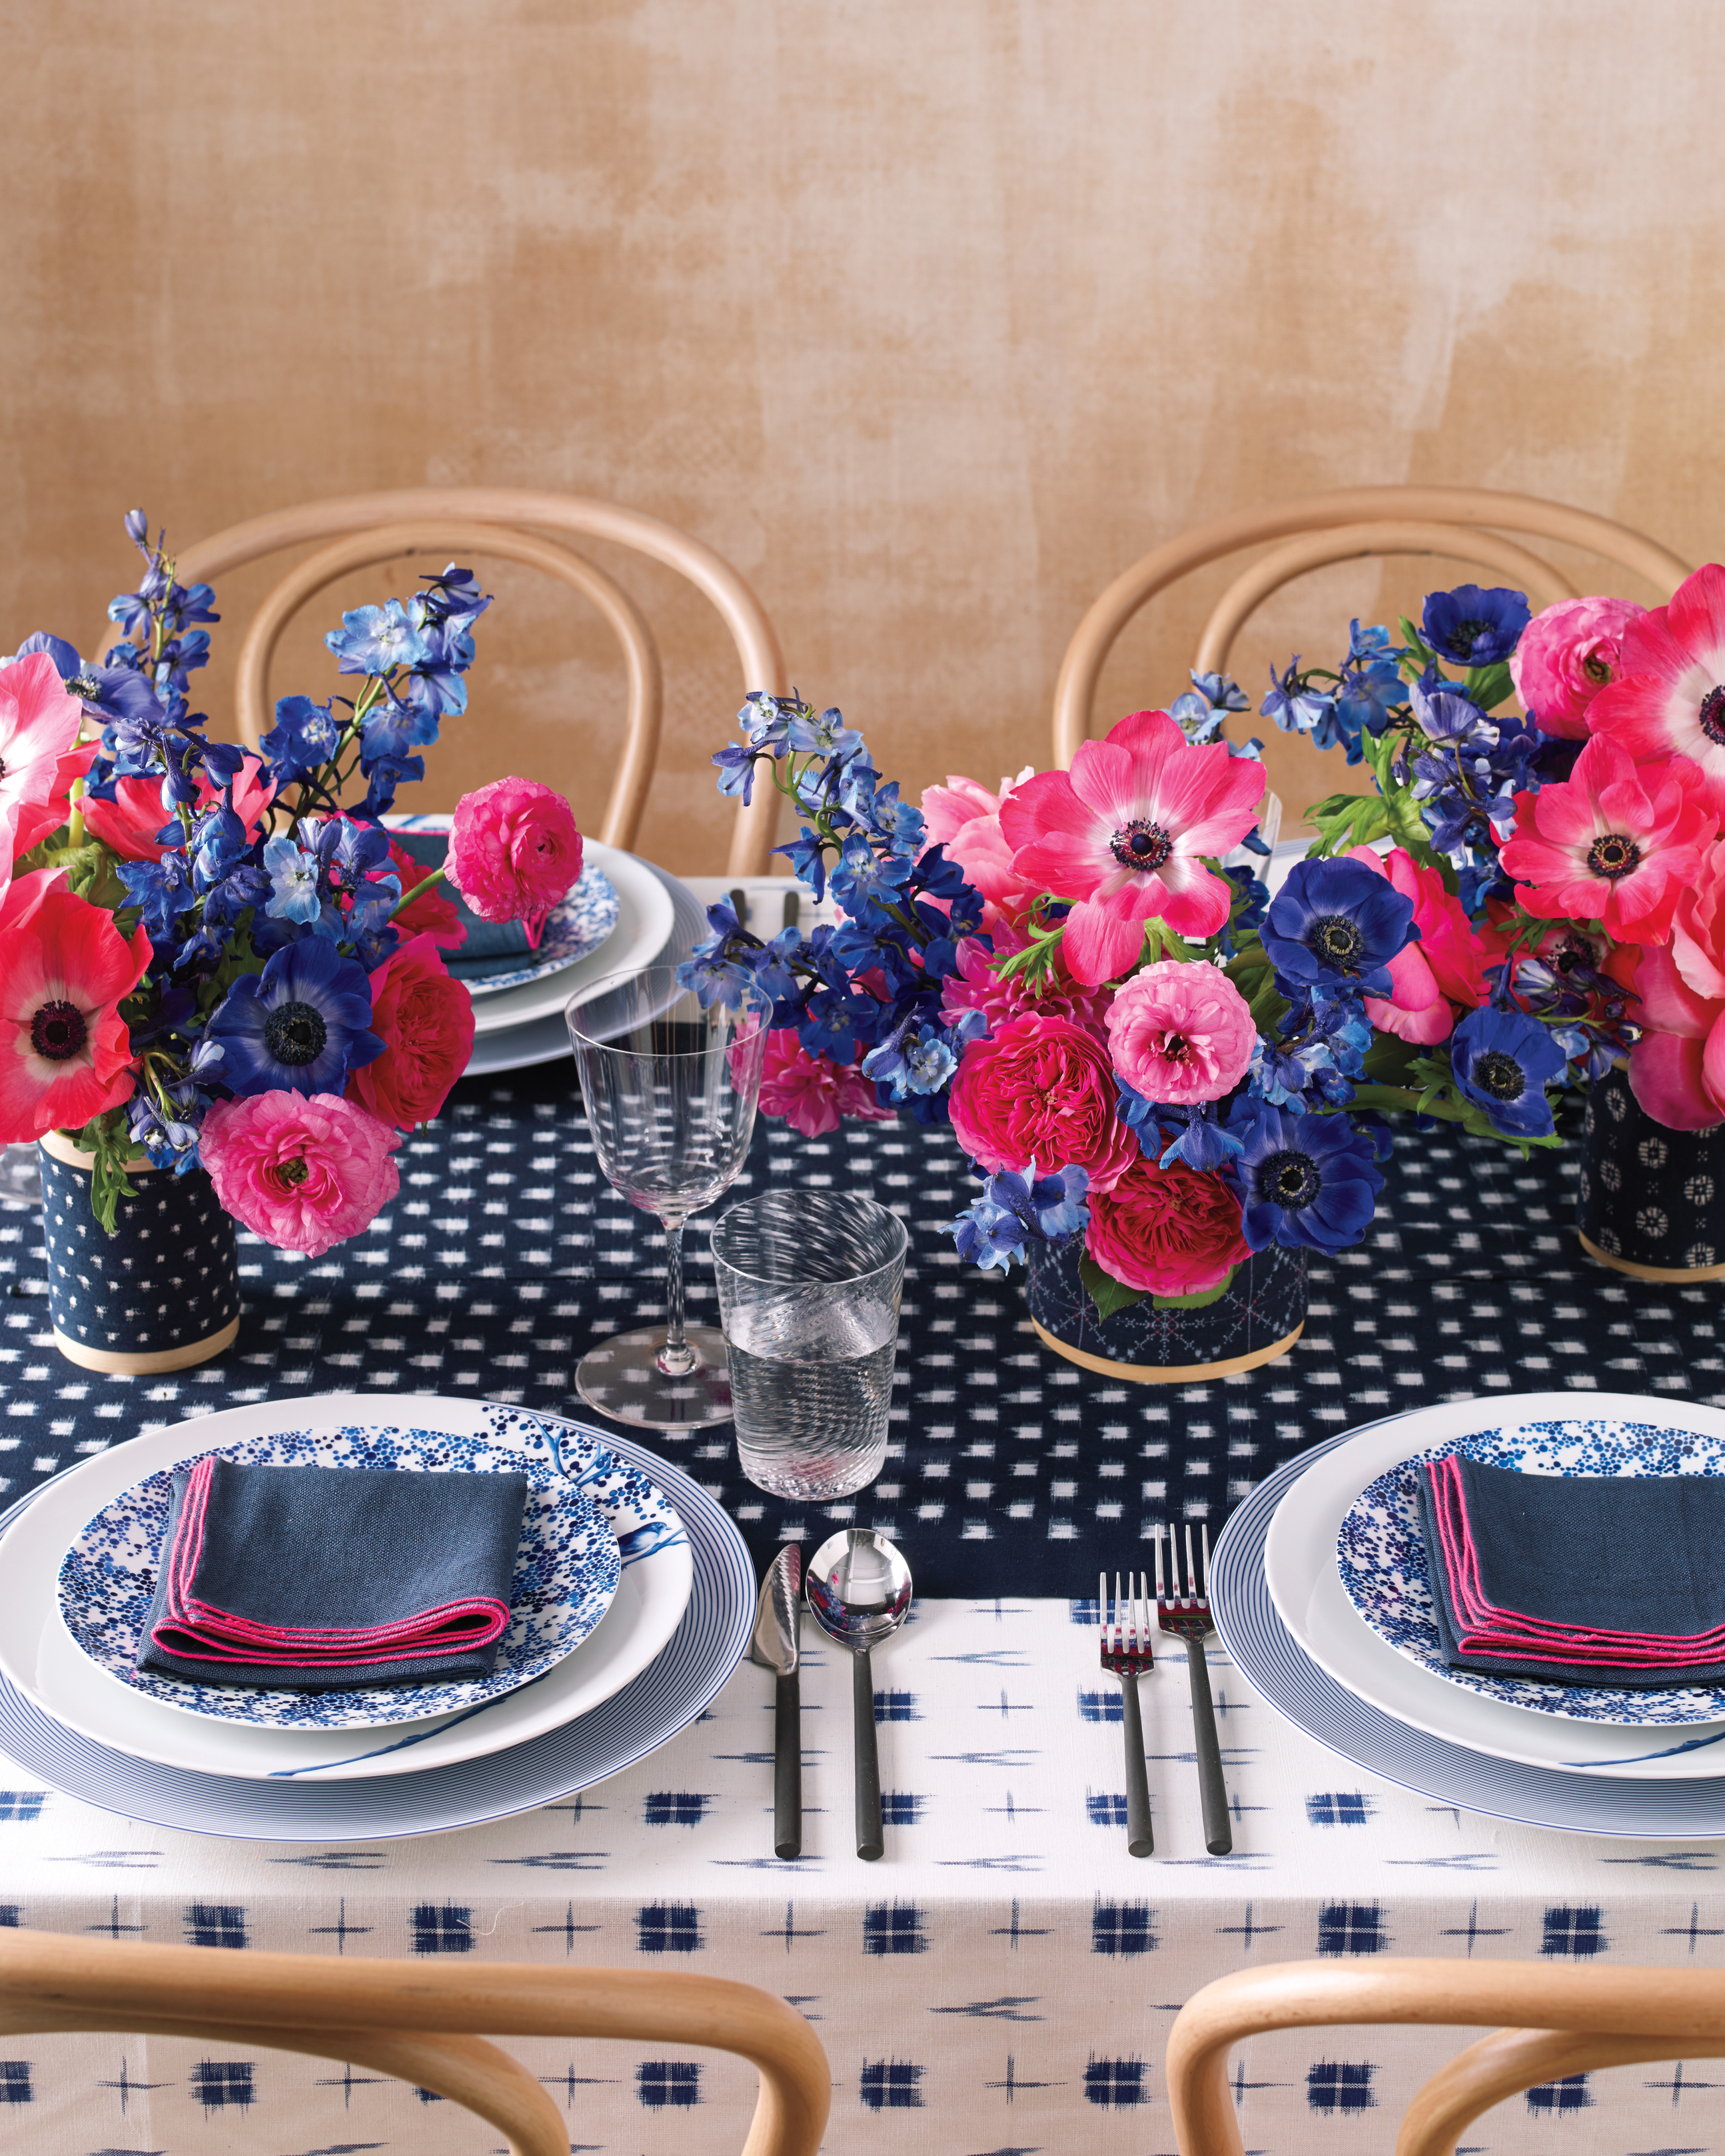 table-setting791-mwd110739.jpg